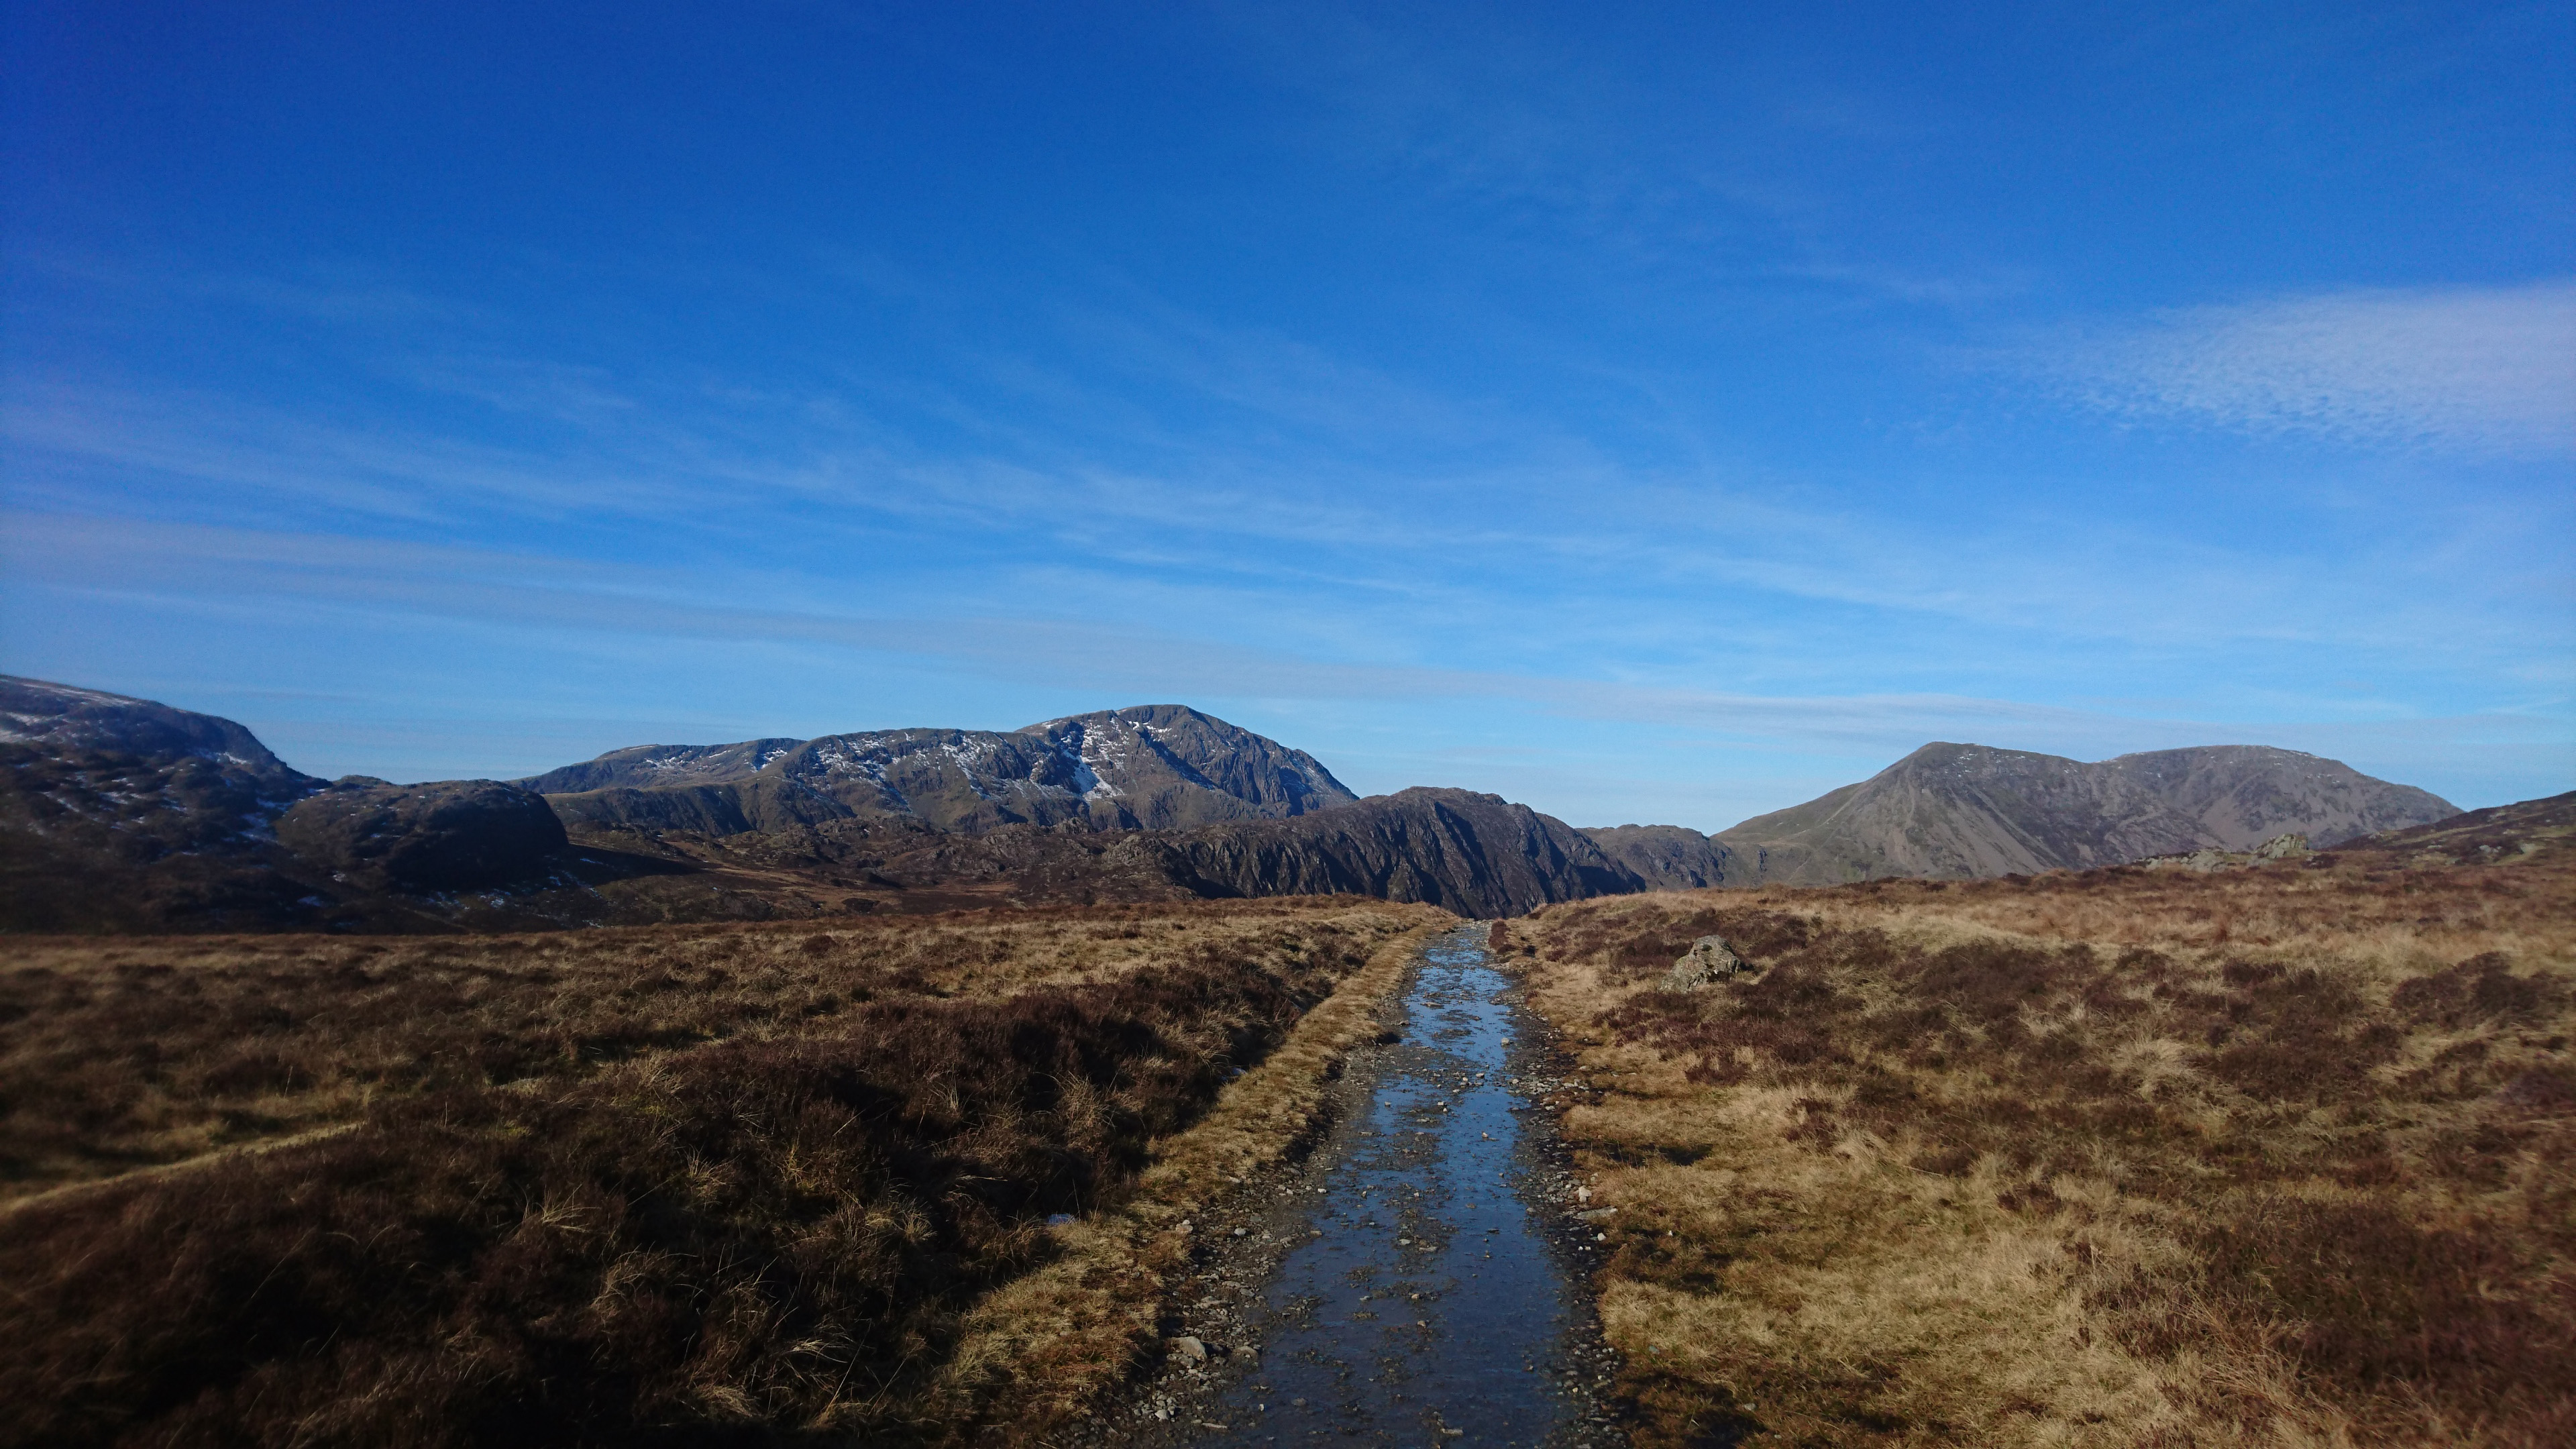 The Road to Haystacks